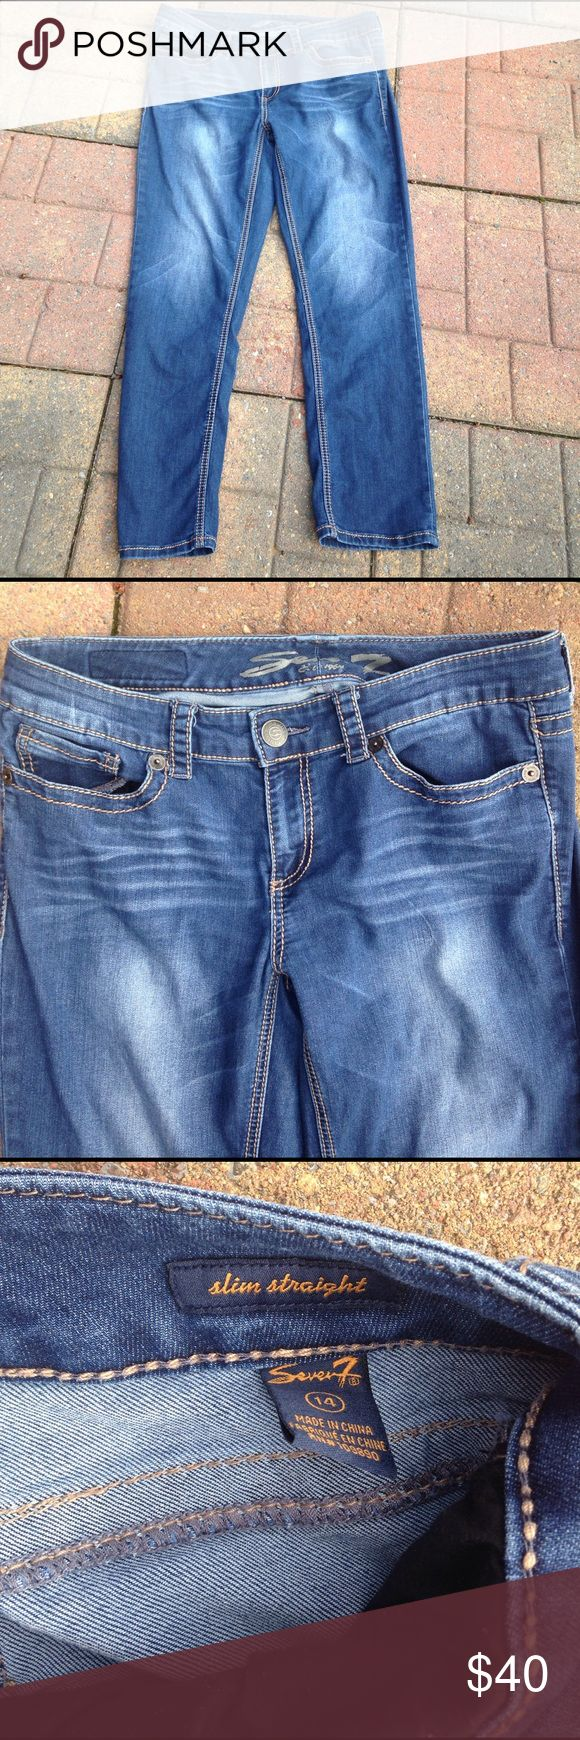 7 Seven Jeans Pre owned used condition slim straight. Seven7 Jeans Straight Leg